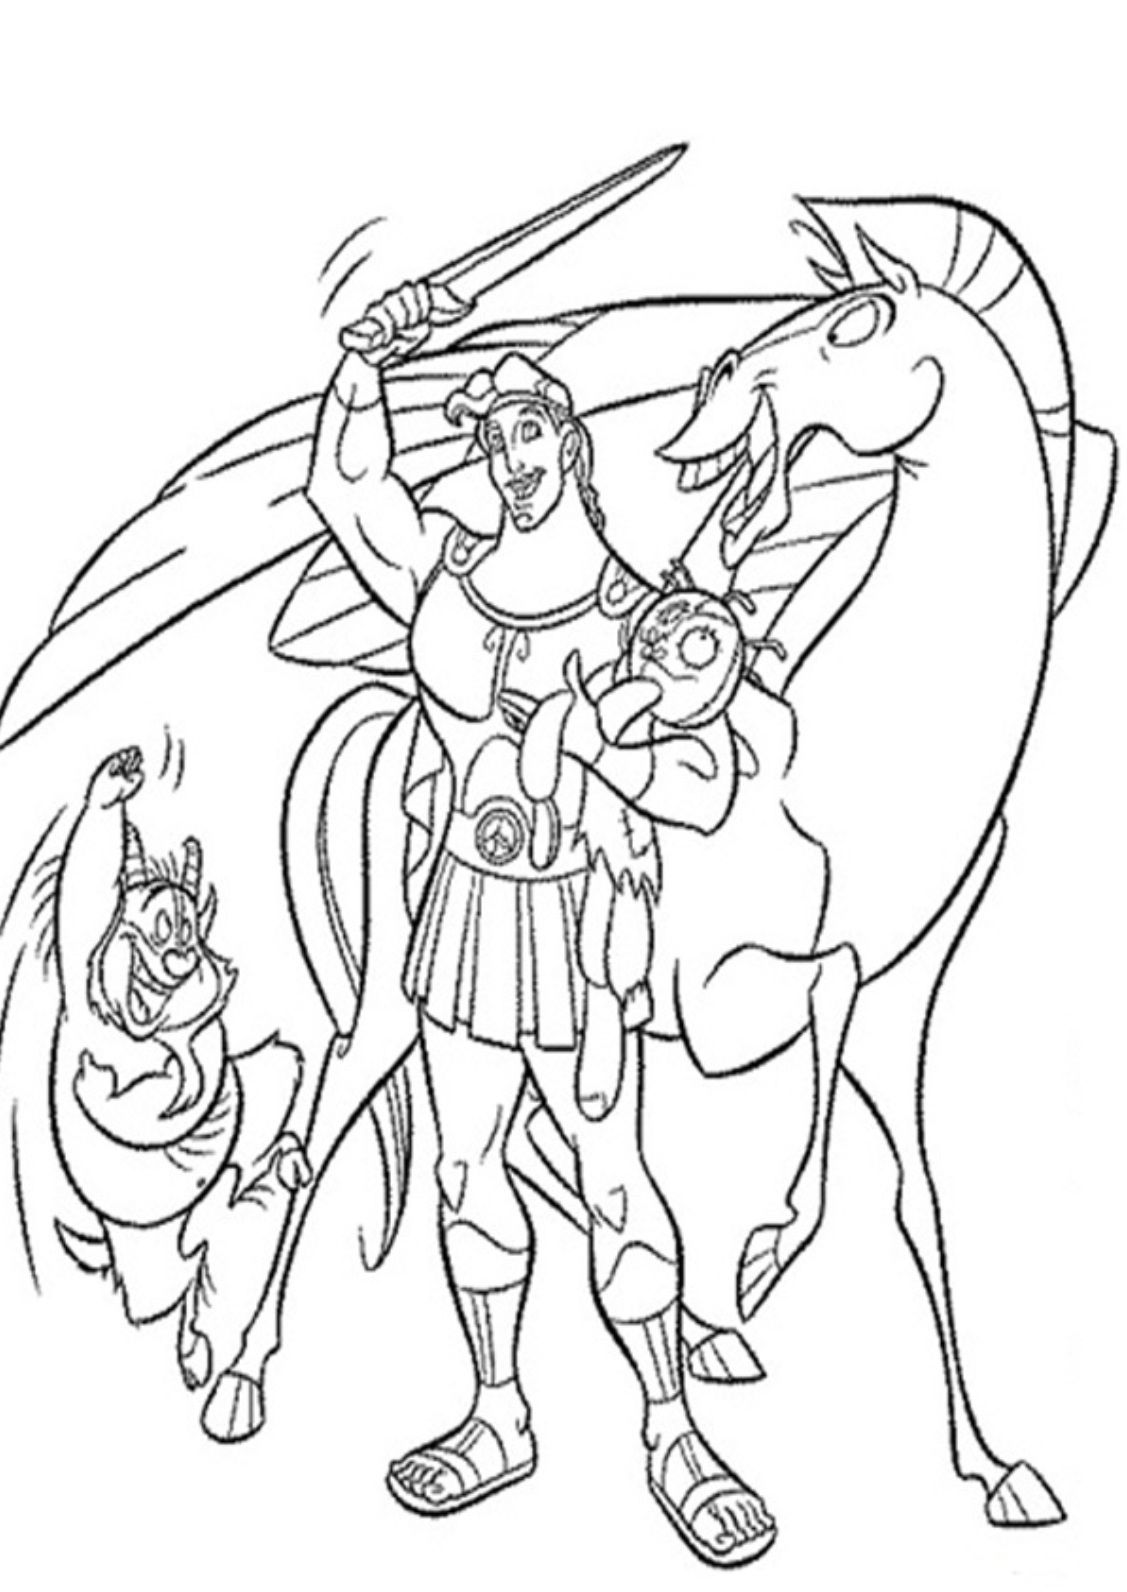 Hercules Win Coloring Pages For Kids D6i Printable Hercules Coloring Pages For Kids Monster Coloring Pages Avengers Coloring Pages Disney Coloring Pages